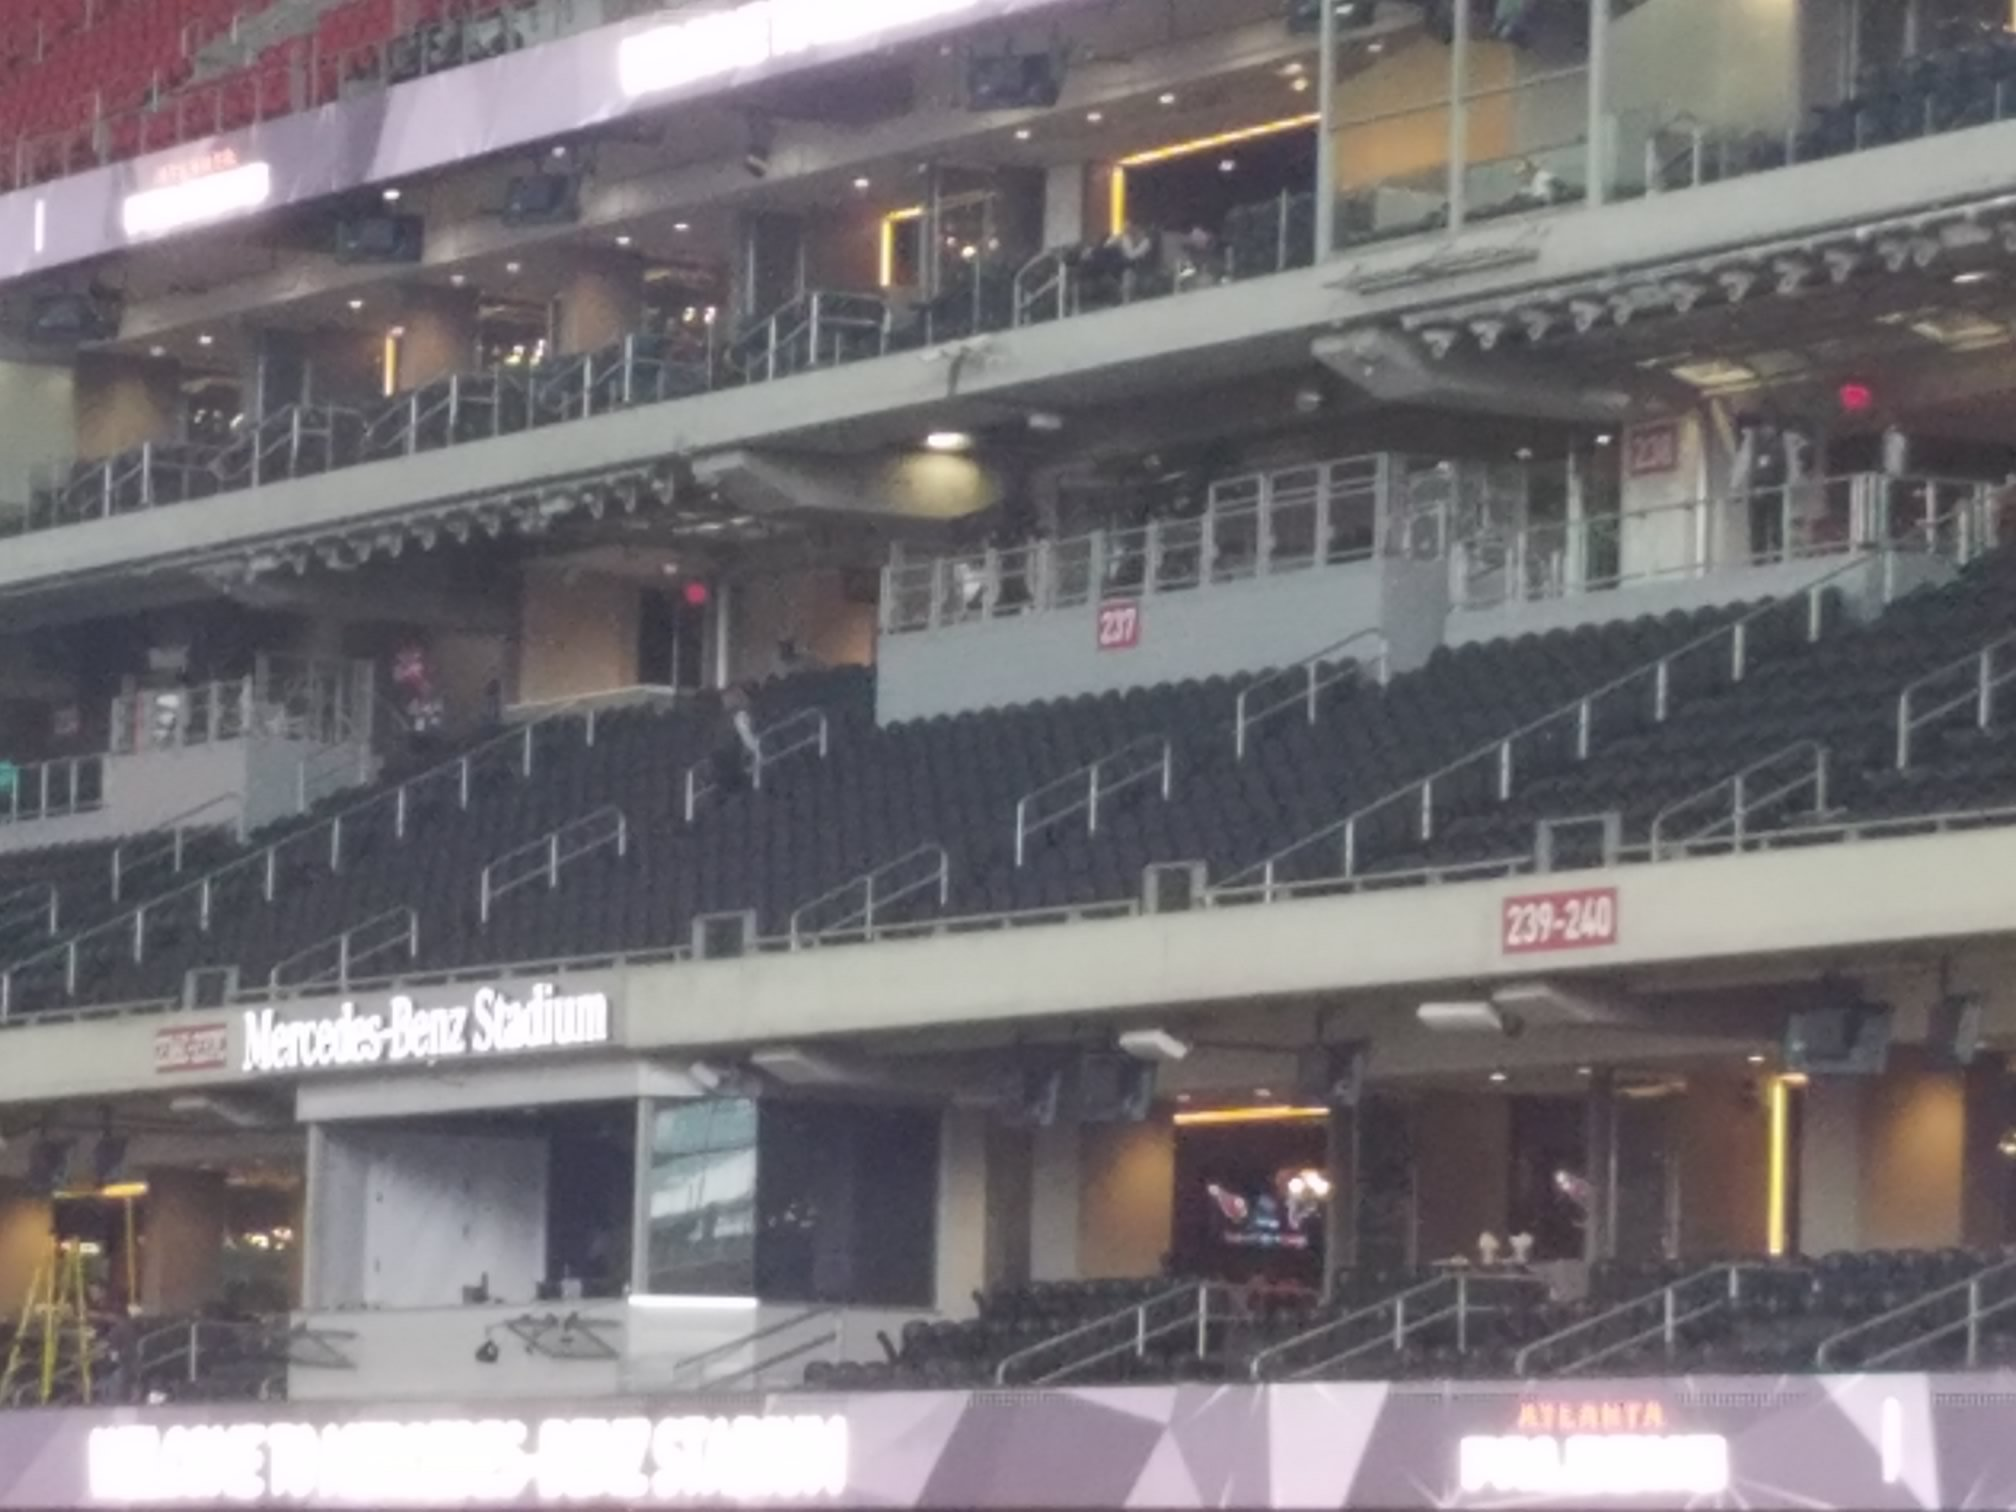 Mercedes benz stadium club 211 atlanta falcons for Mercedes benz superdome club level seating